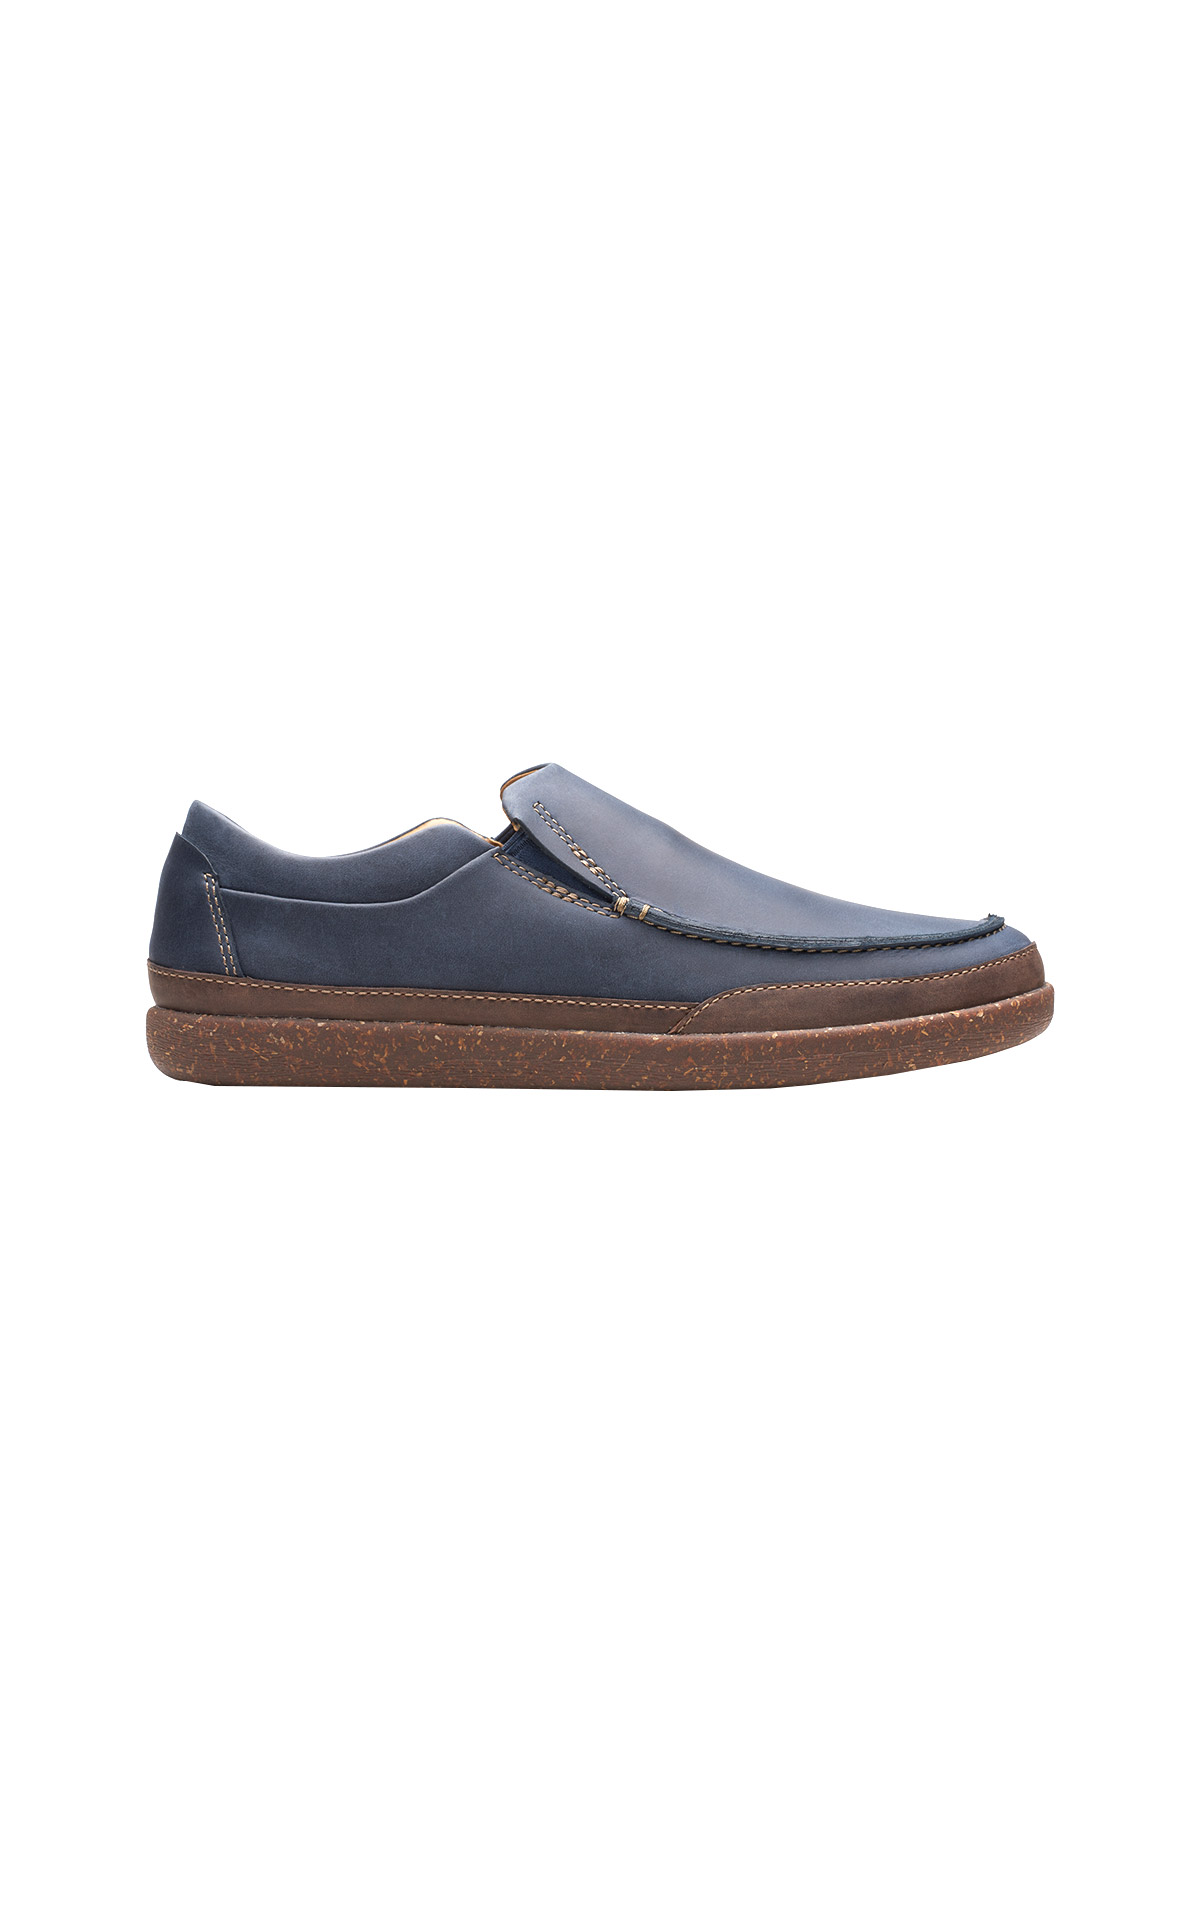 Men's Un Lisbon Twin shoes Clarks